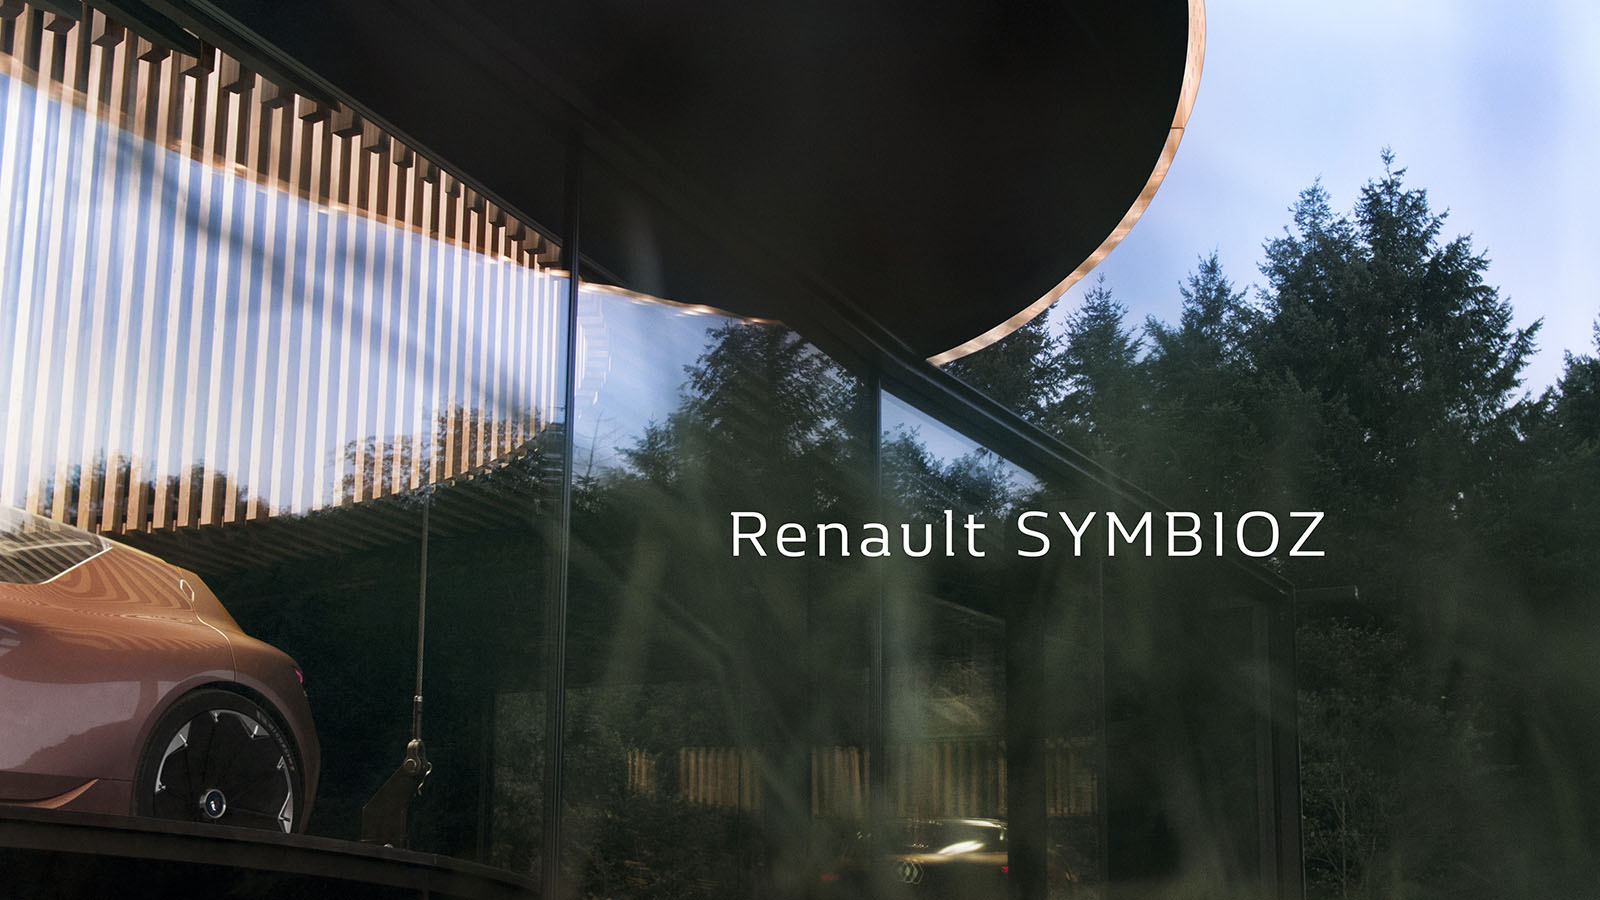 Renault to showcase new concept Symbioz at 2017 Frankfurt Motor Show